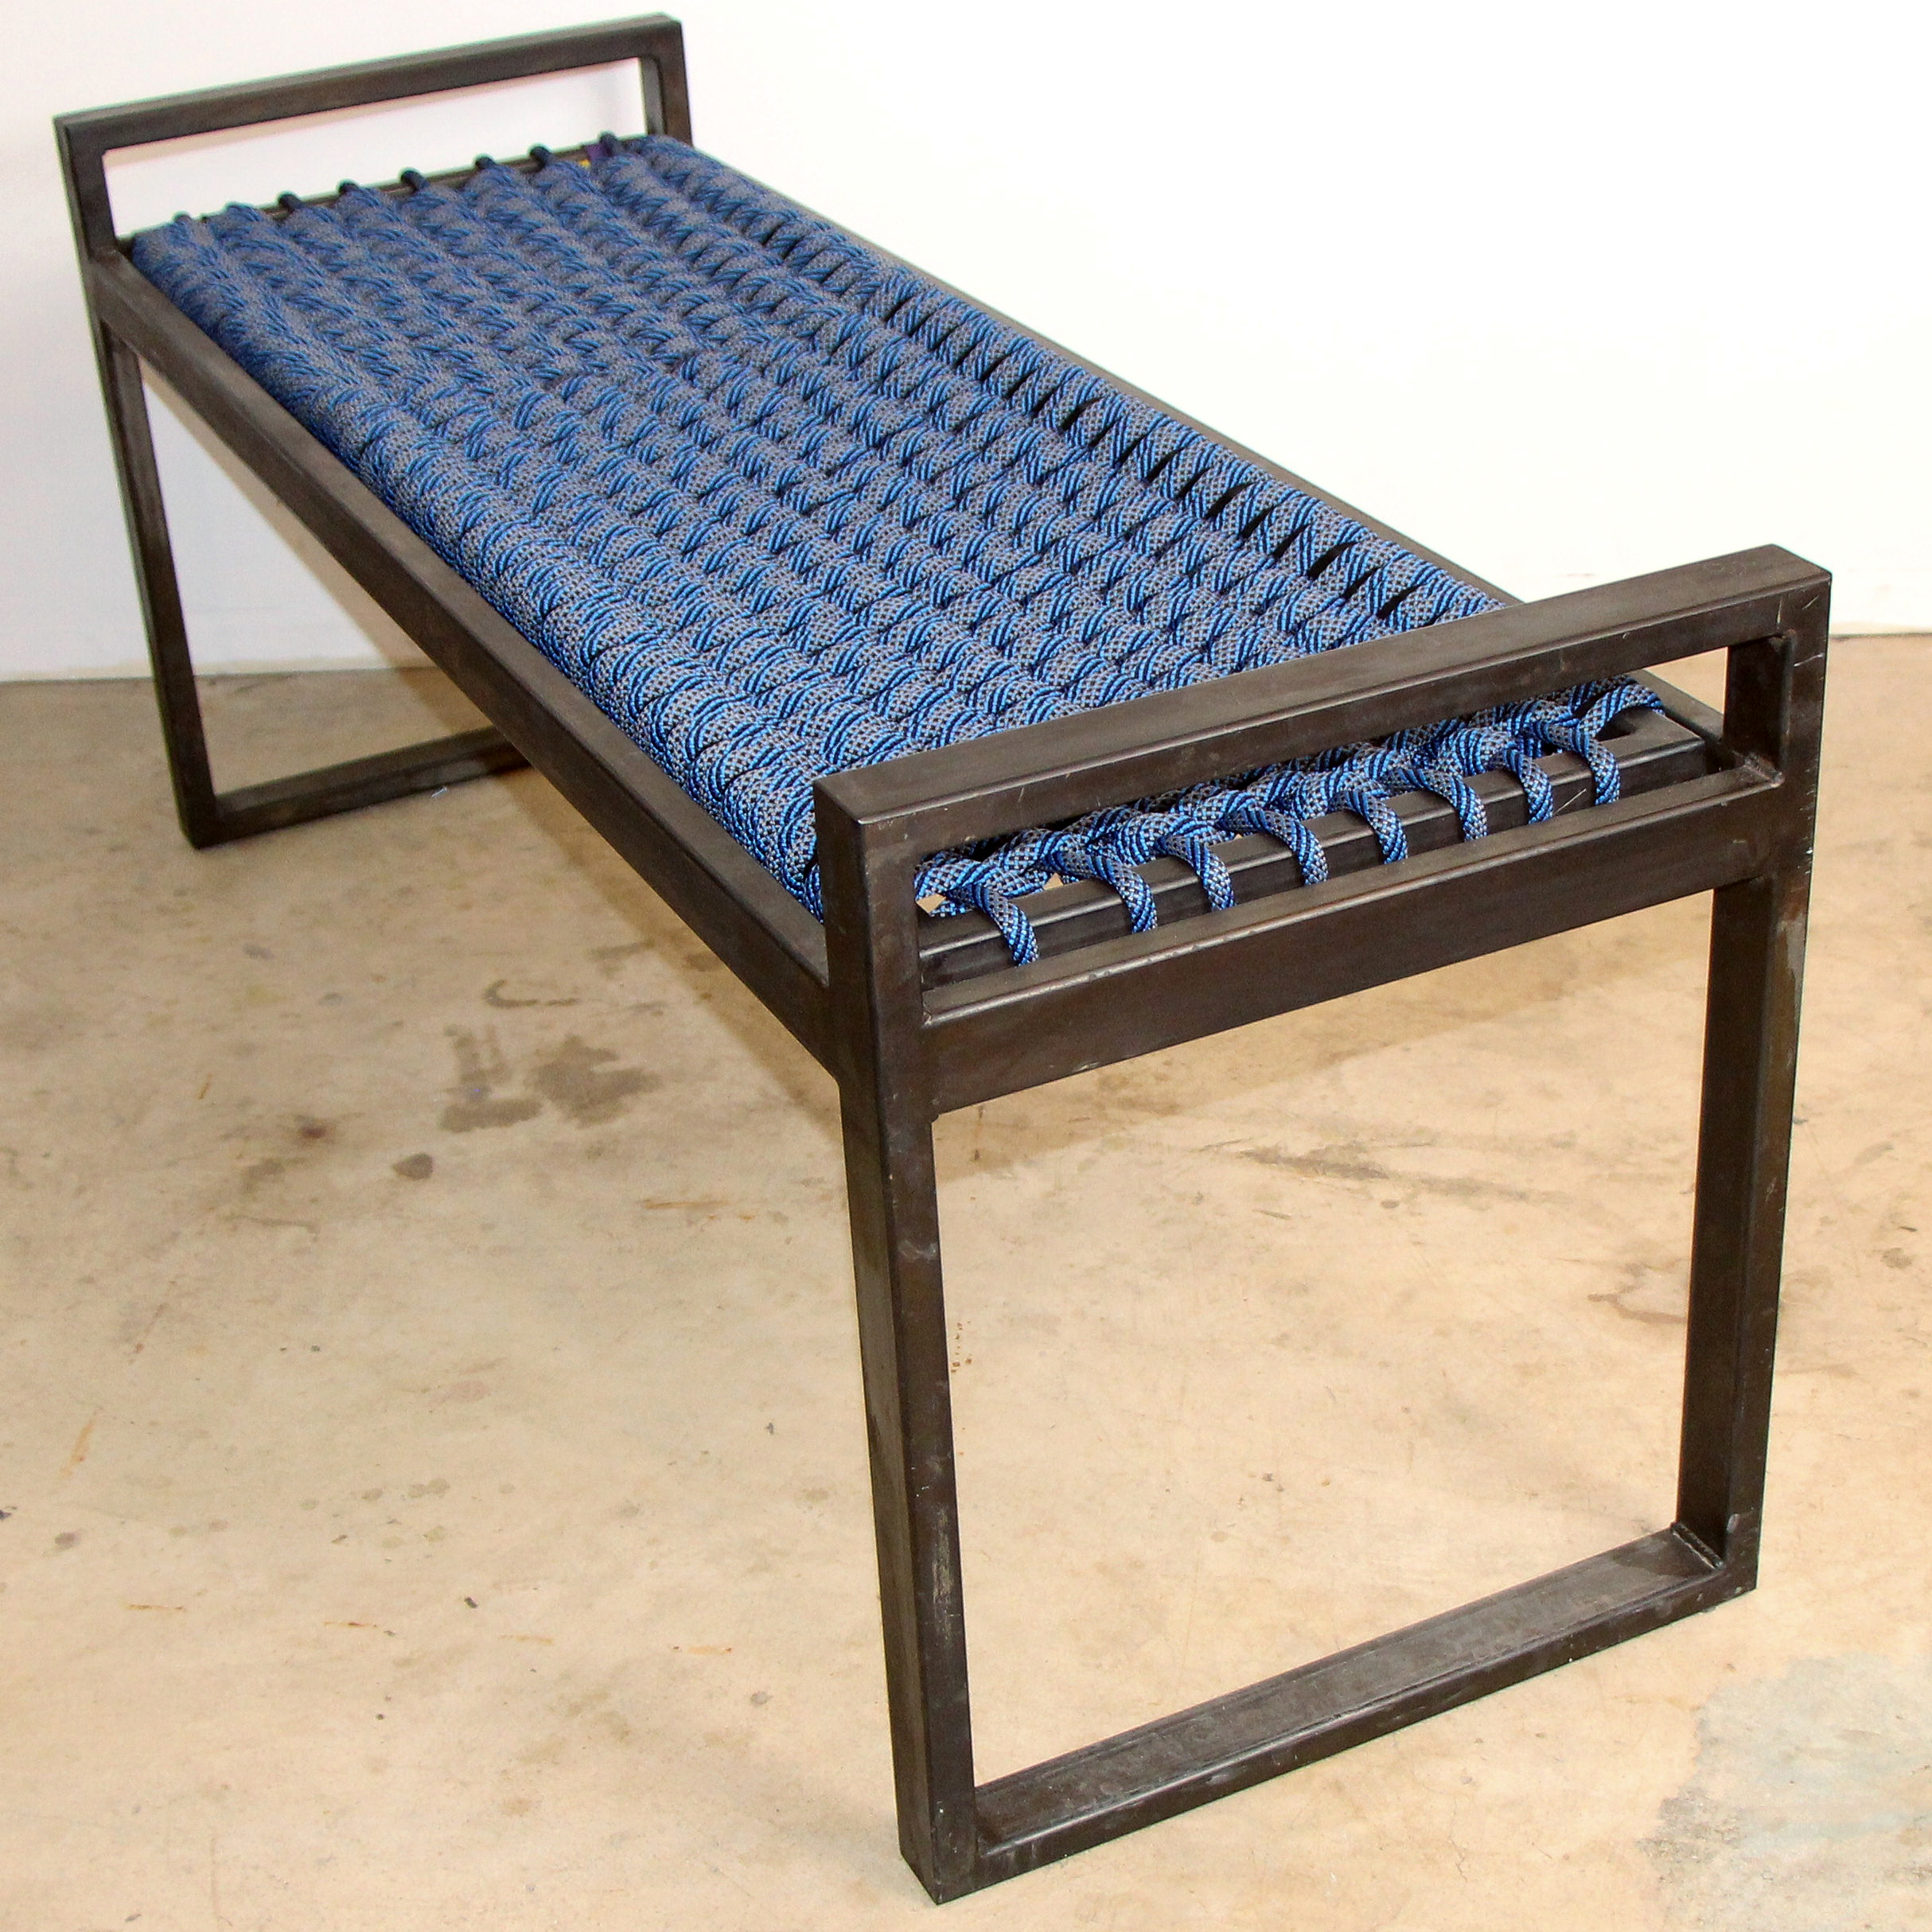 Climbing Rope Steel Bench